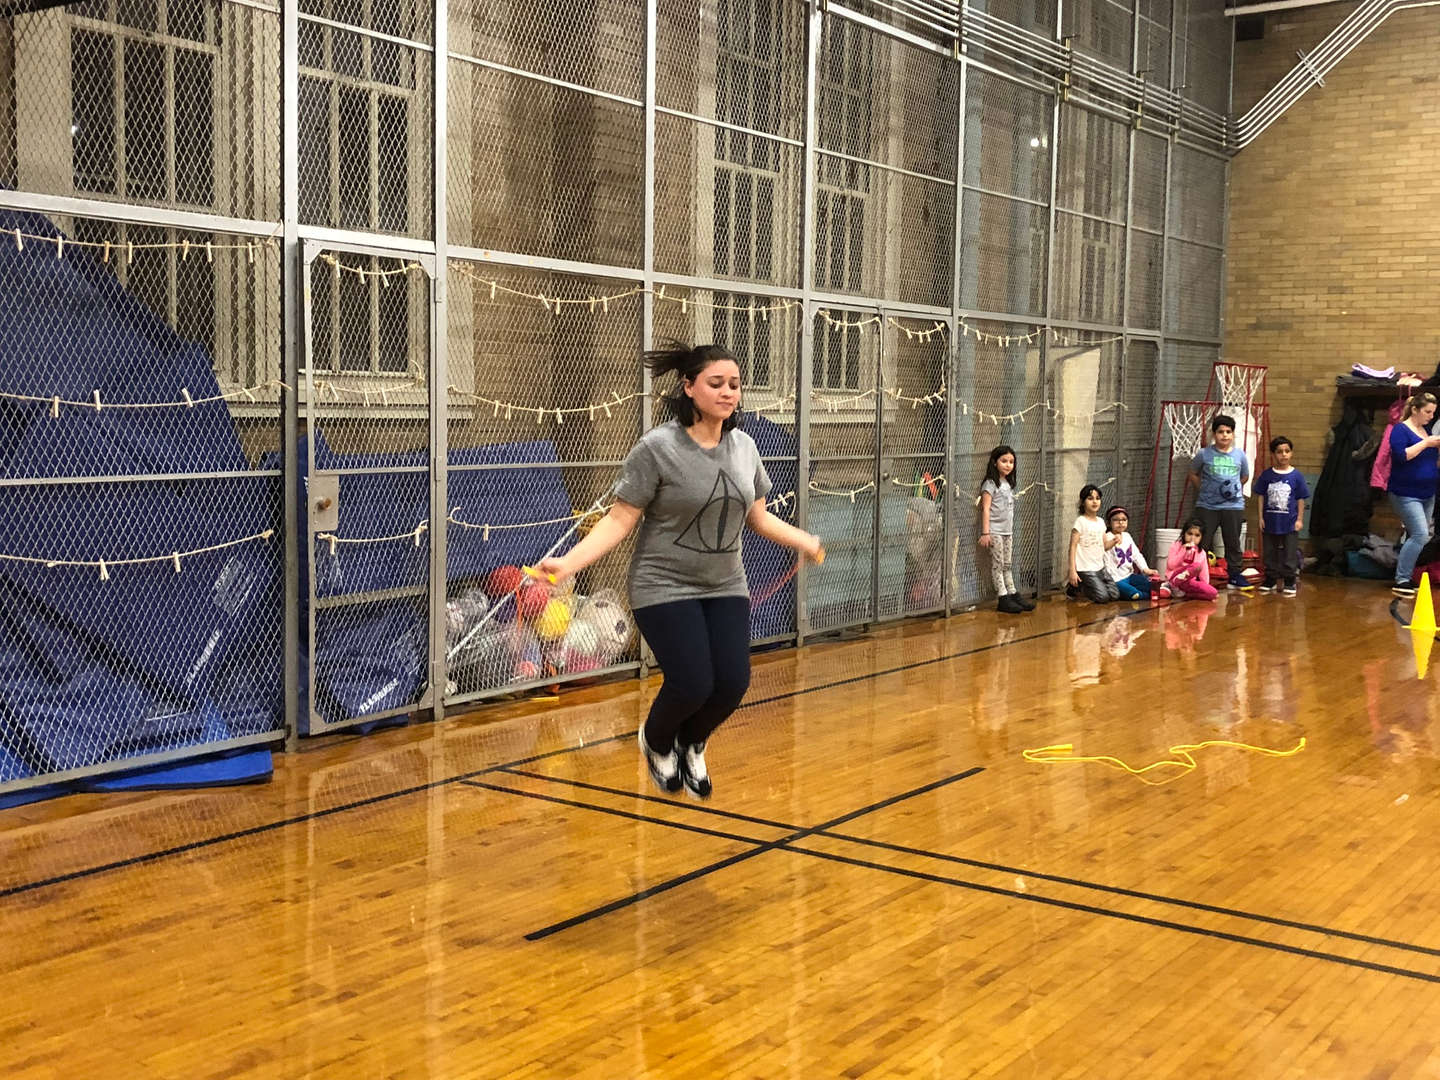 A person jumping rope in the school's gym.